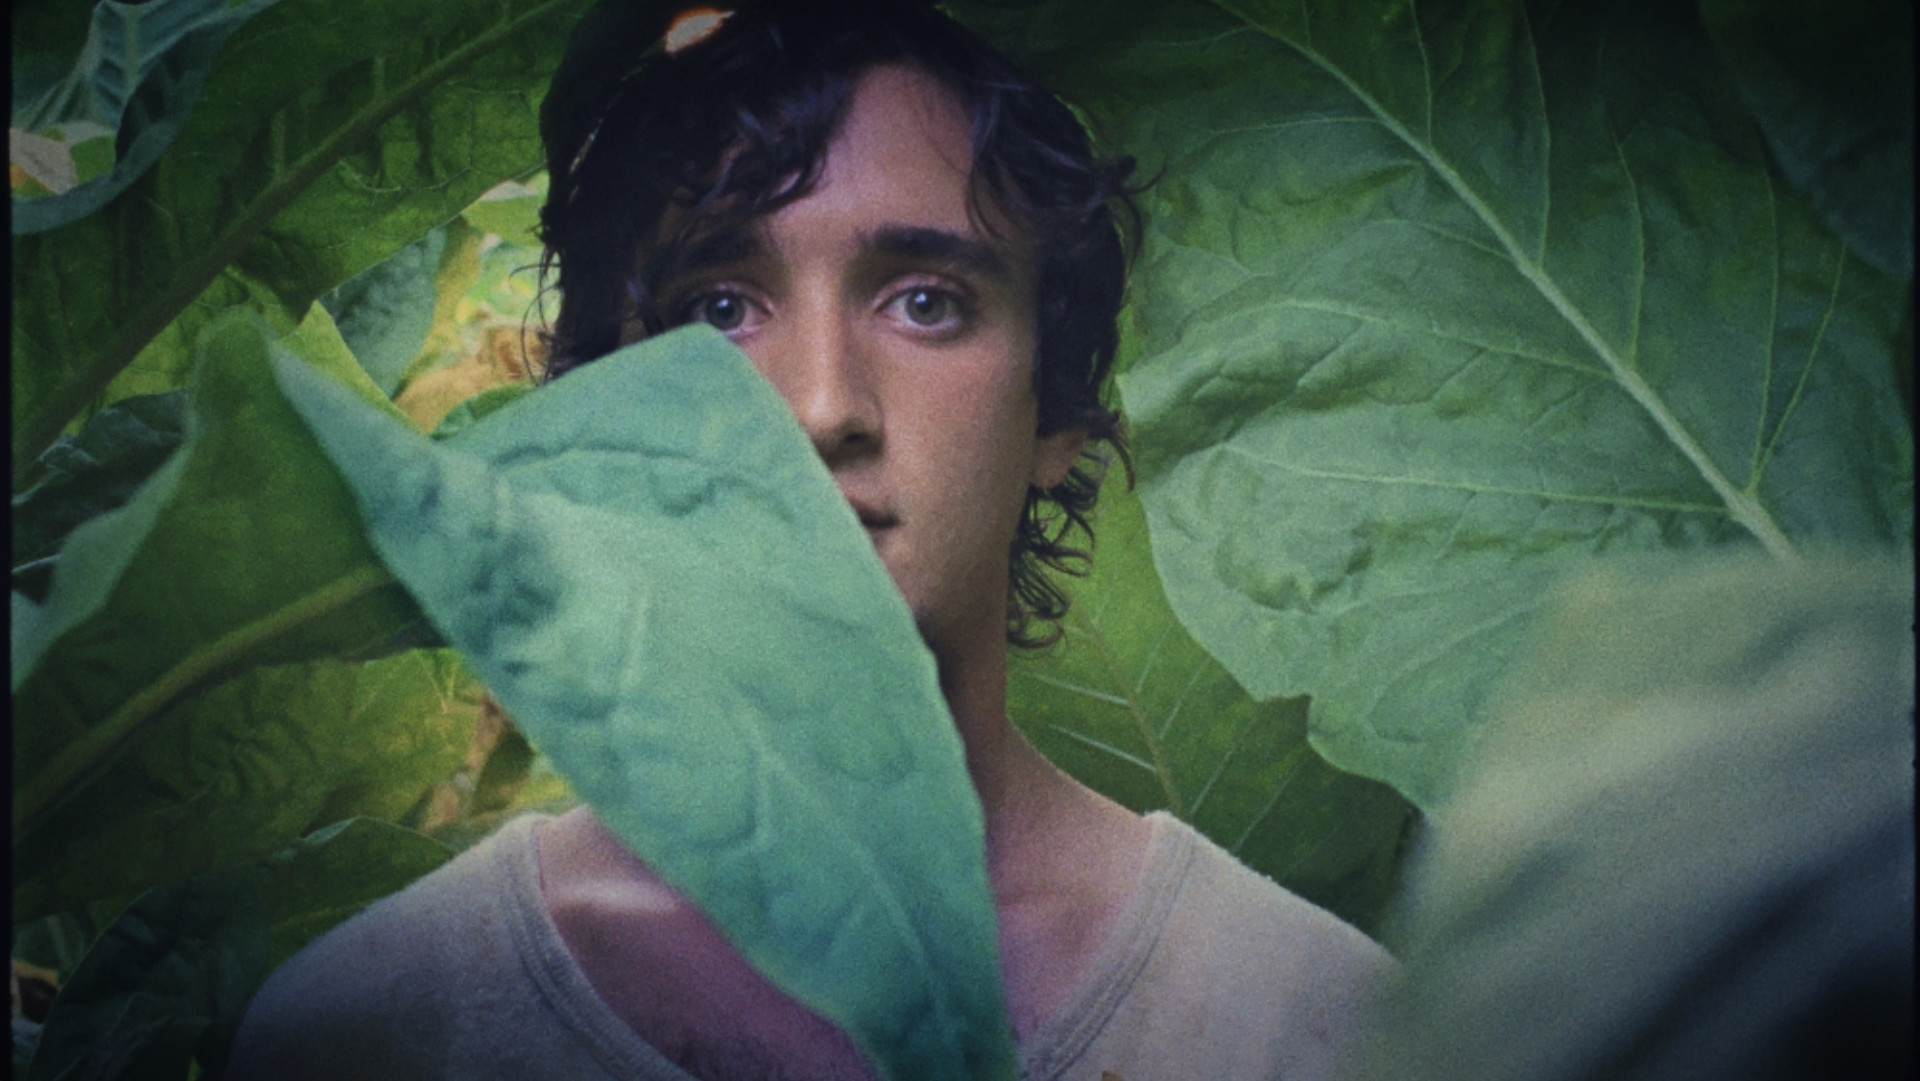 Efa 2018: in nomination Dogman e Lazzaro Felice